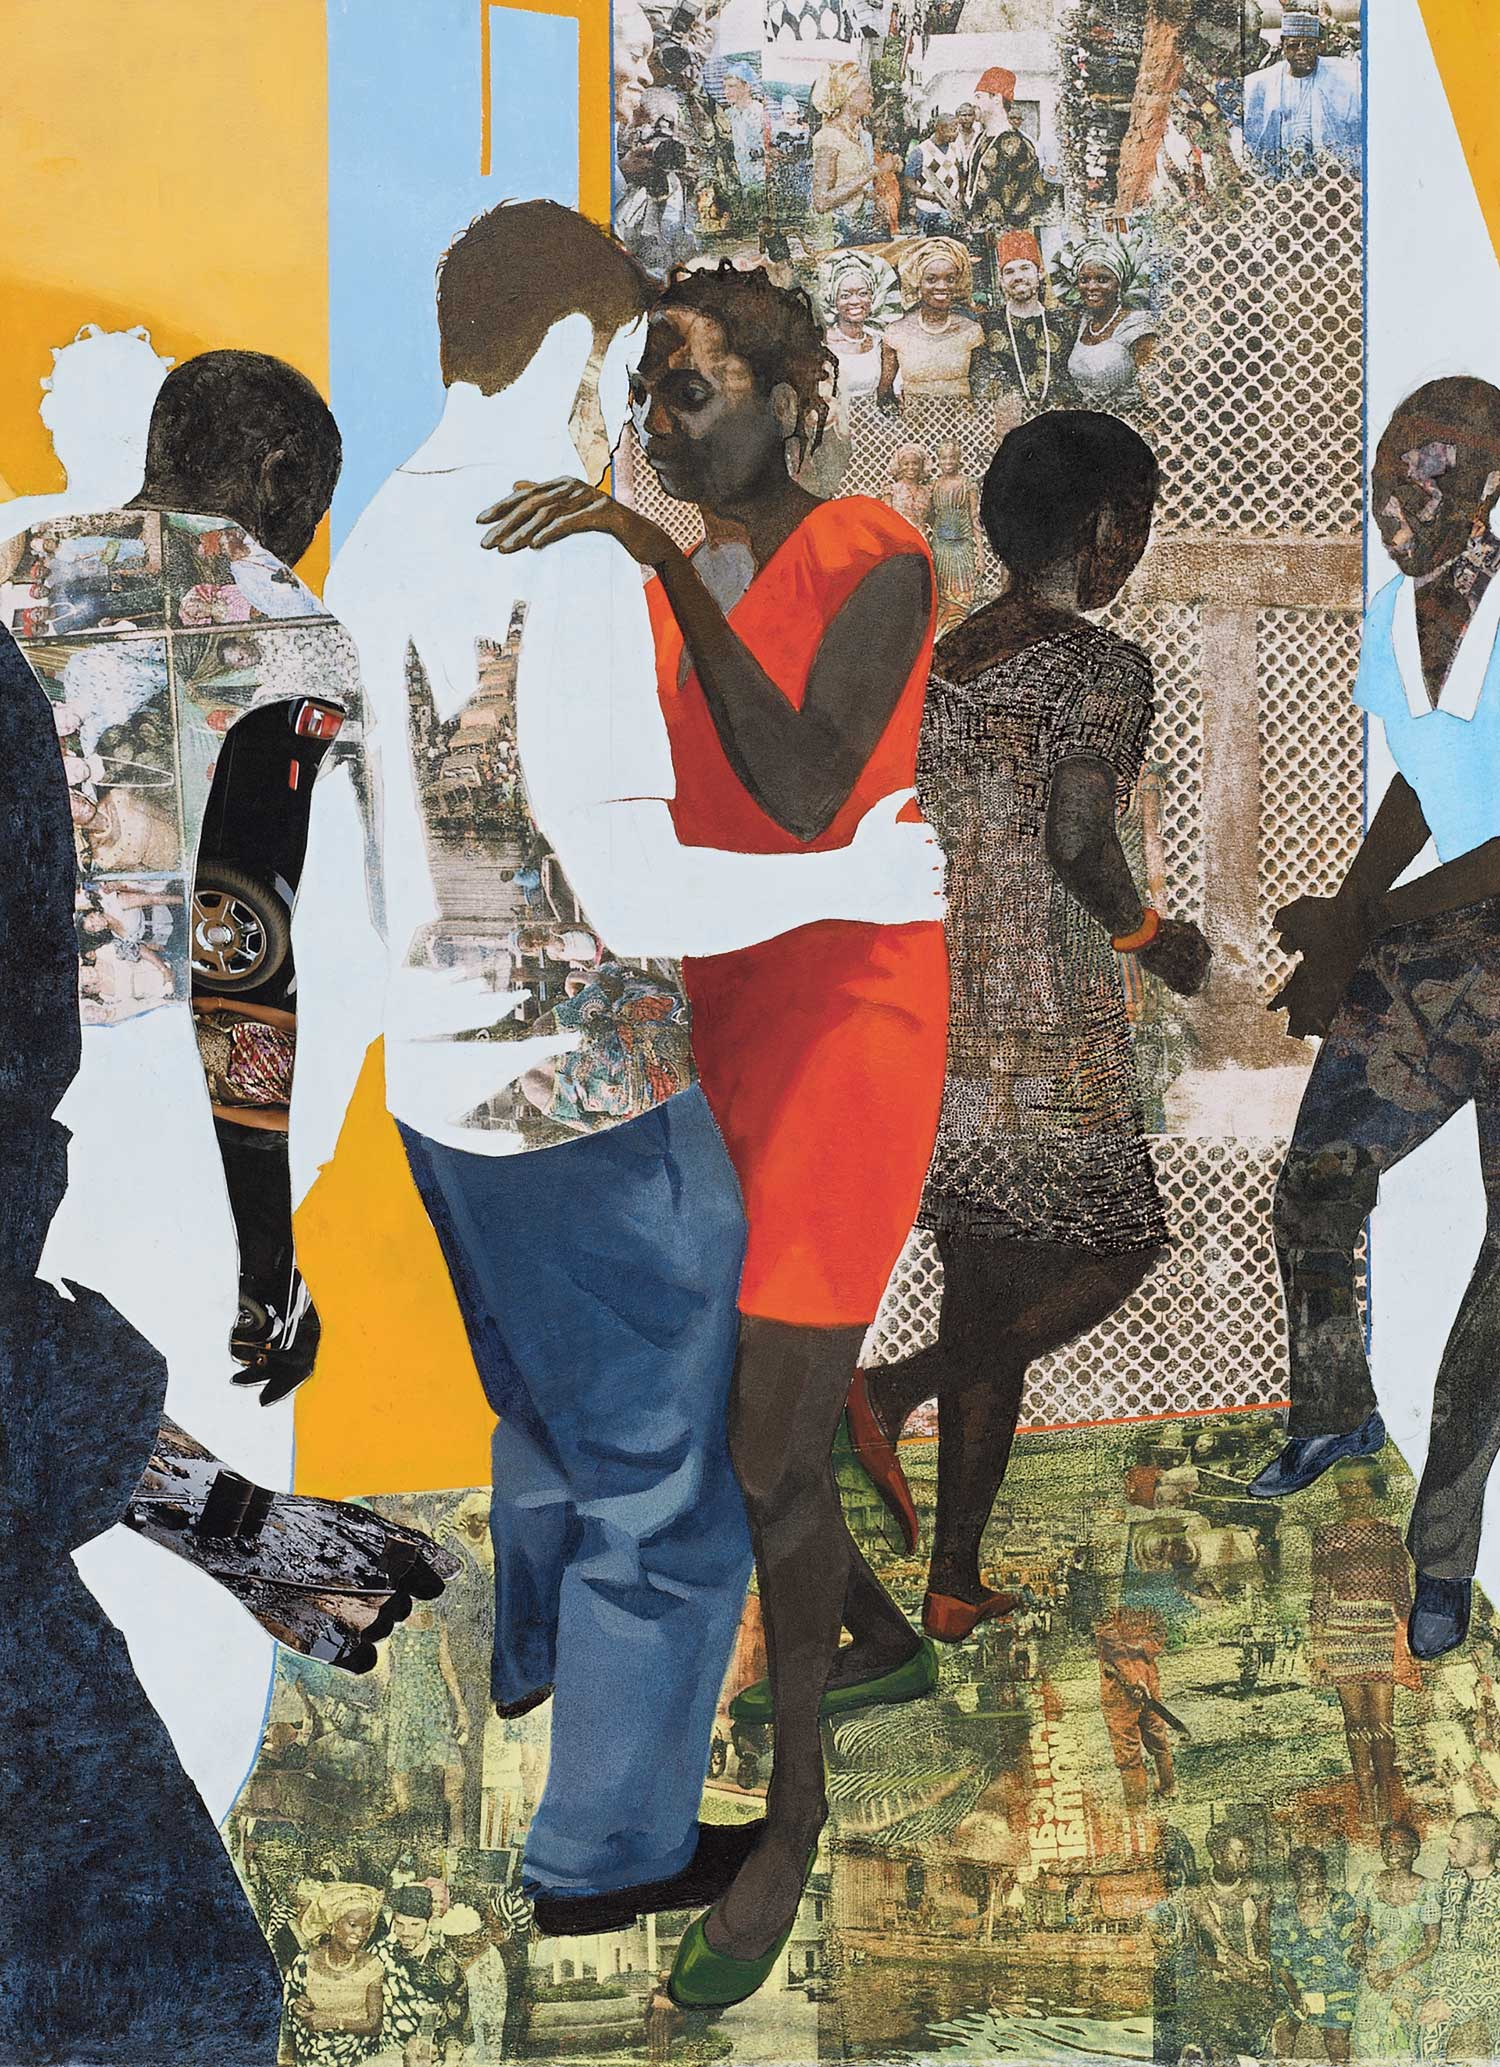 Njideka Akunyili, Efulefu: The Lost One, 2011